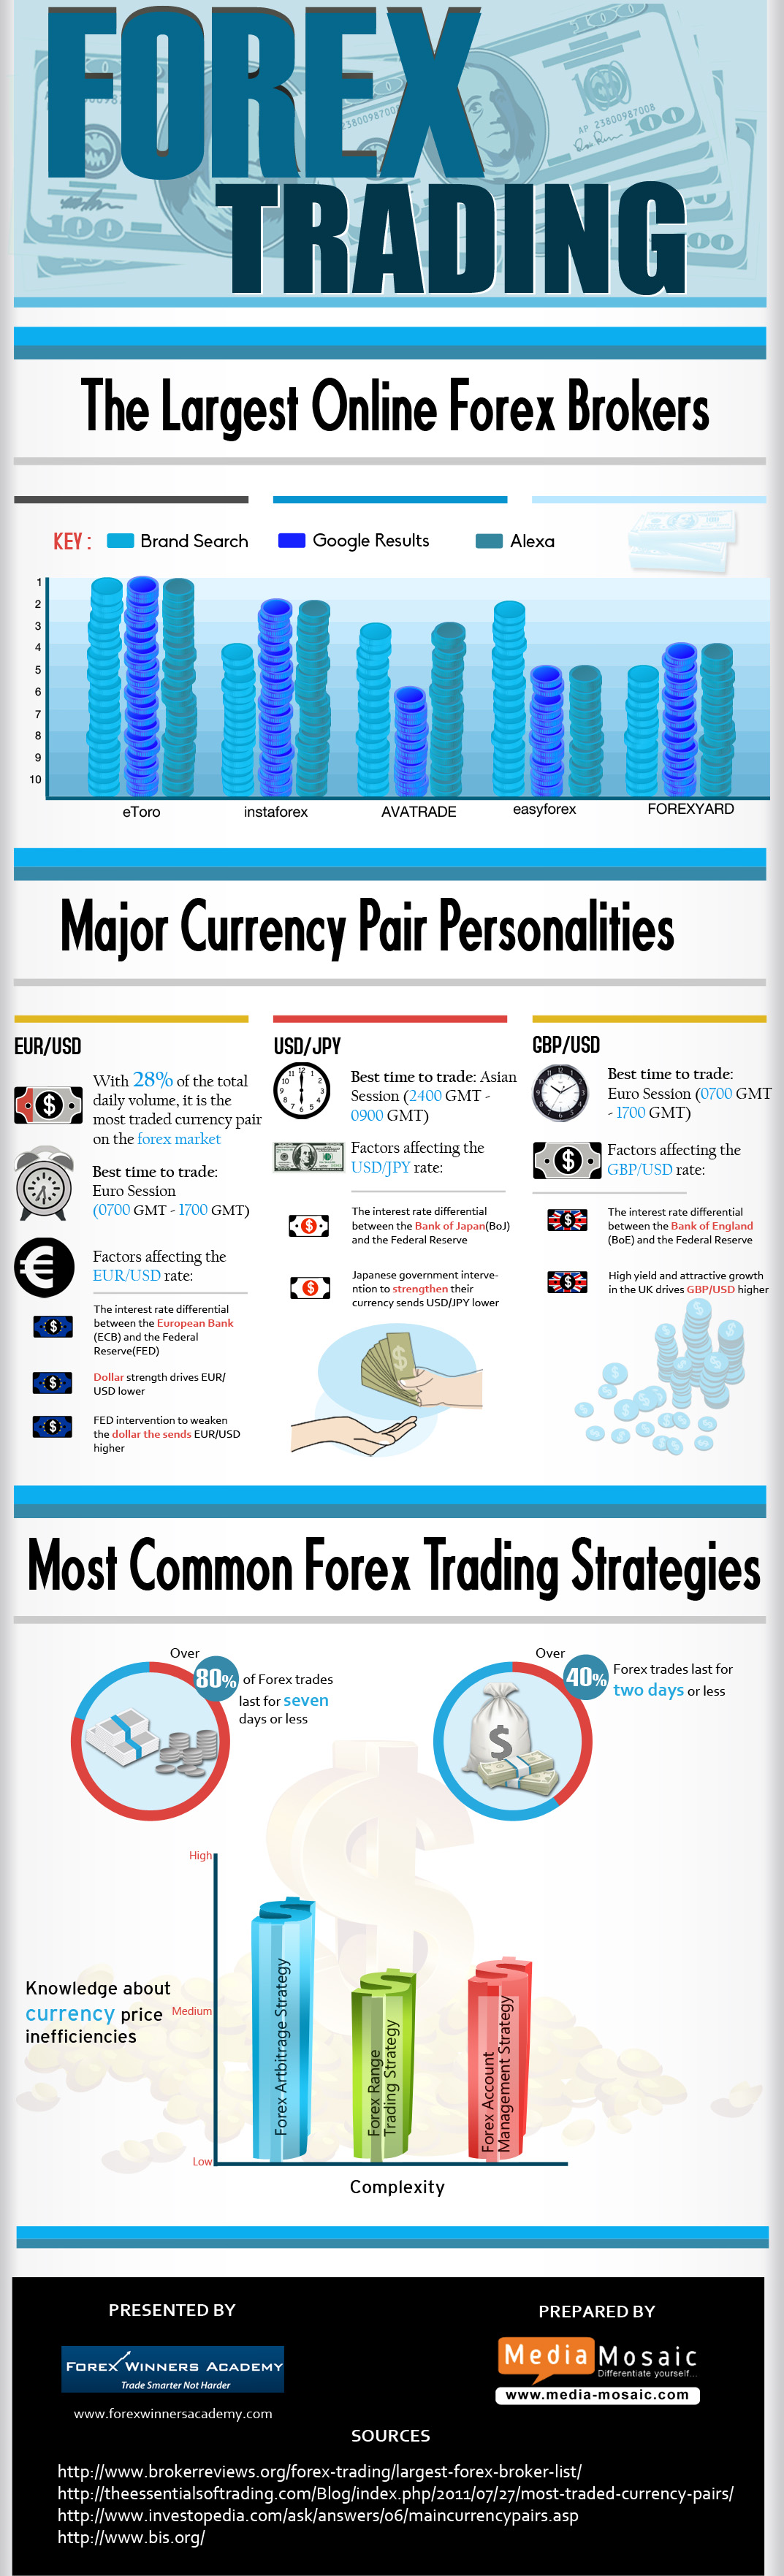 Best online forex brokers 2014